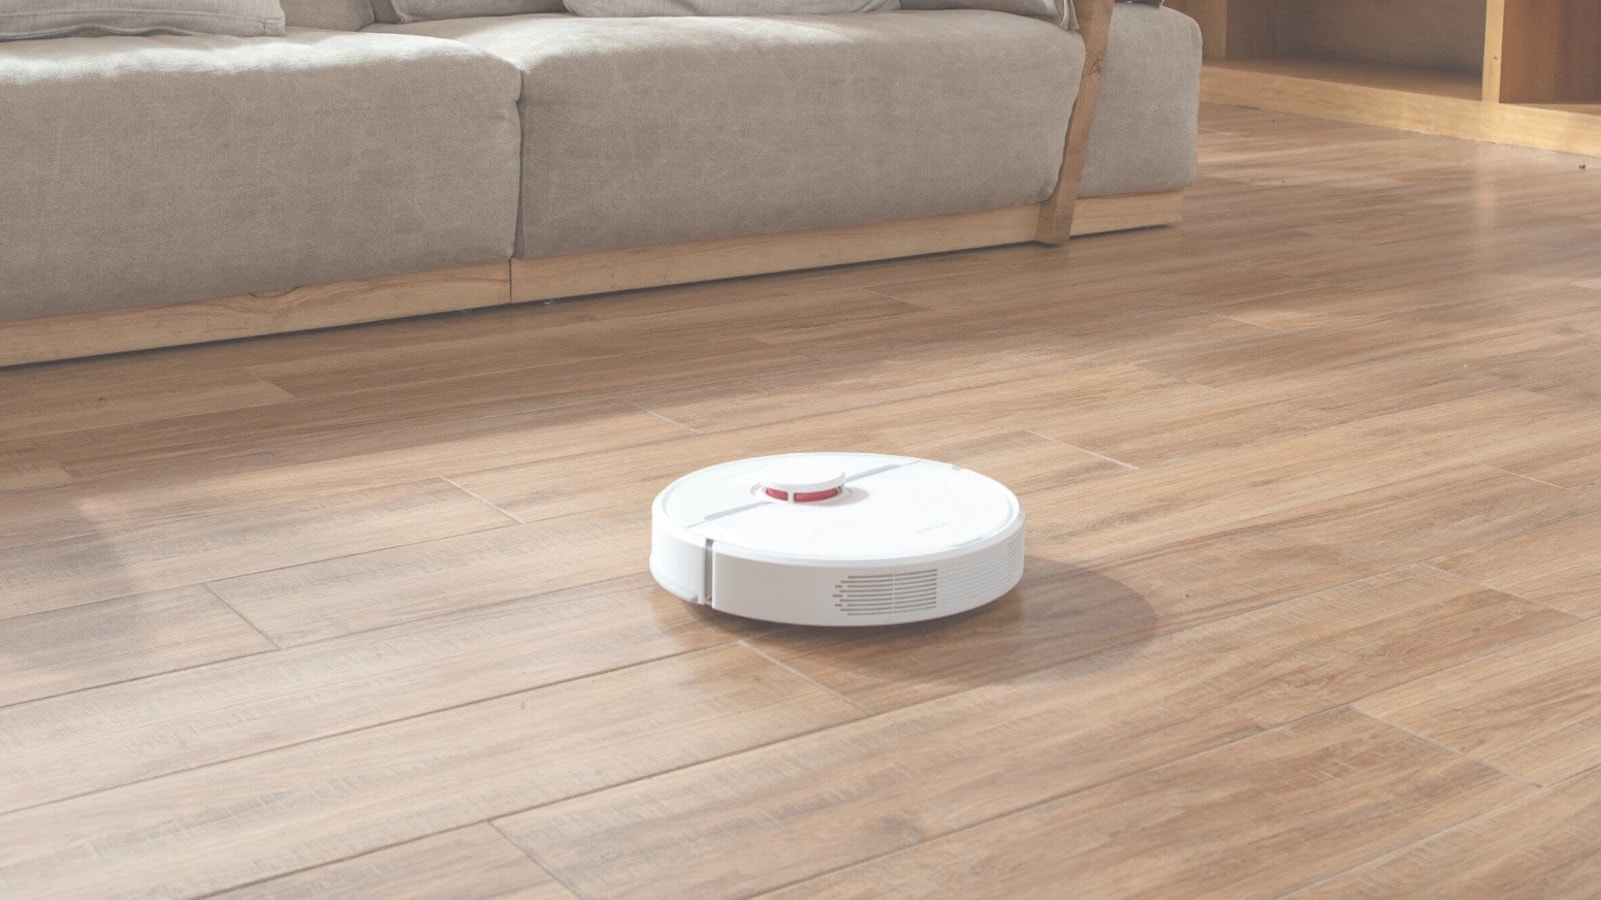 DreameTech D9 Robot Vacuum boasts 3000 Pa strong suction power